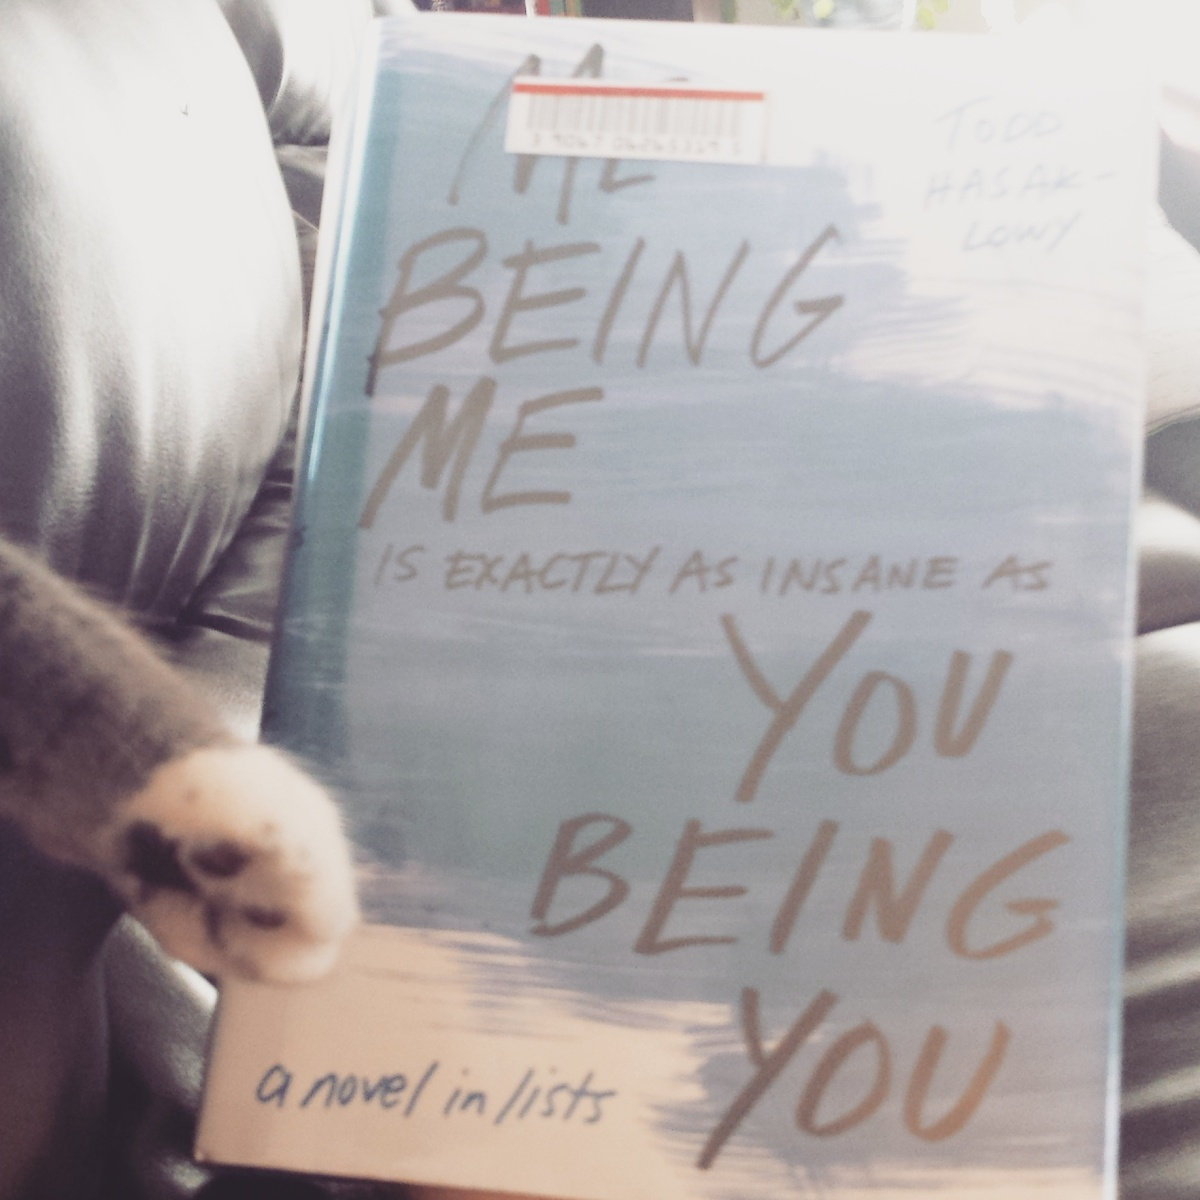 Me Being IS EXACTLY AS INSANE AS You Being You: A Book Review